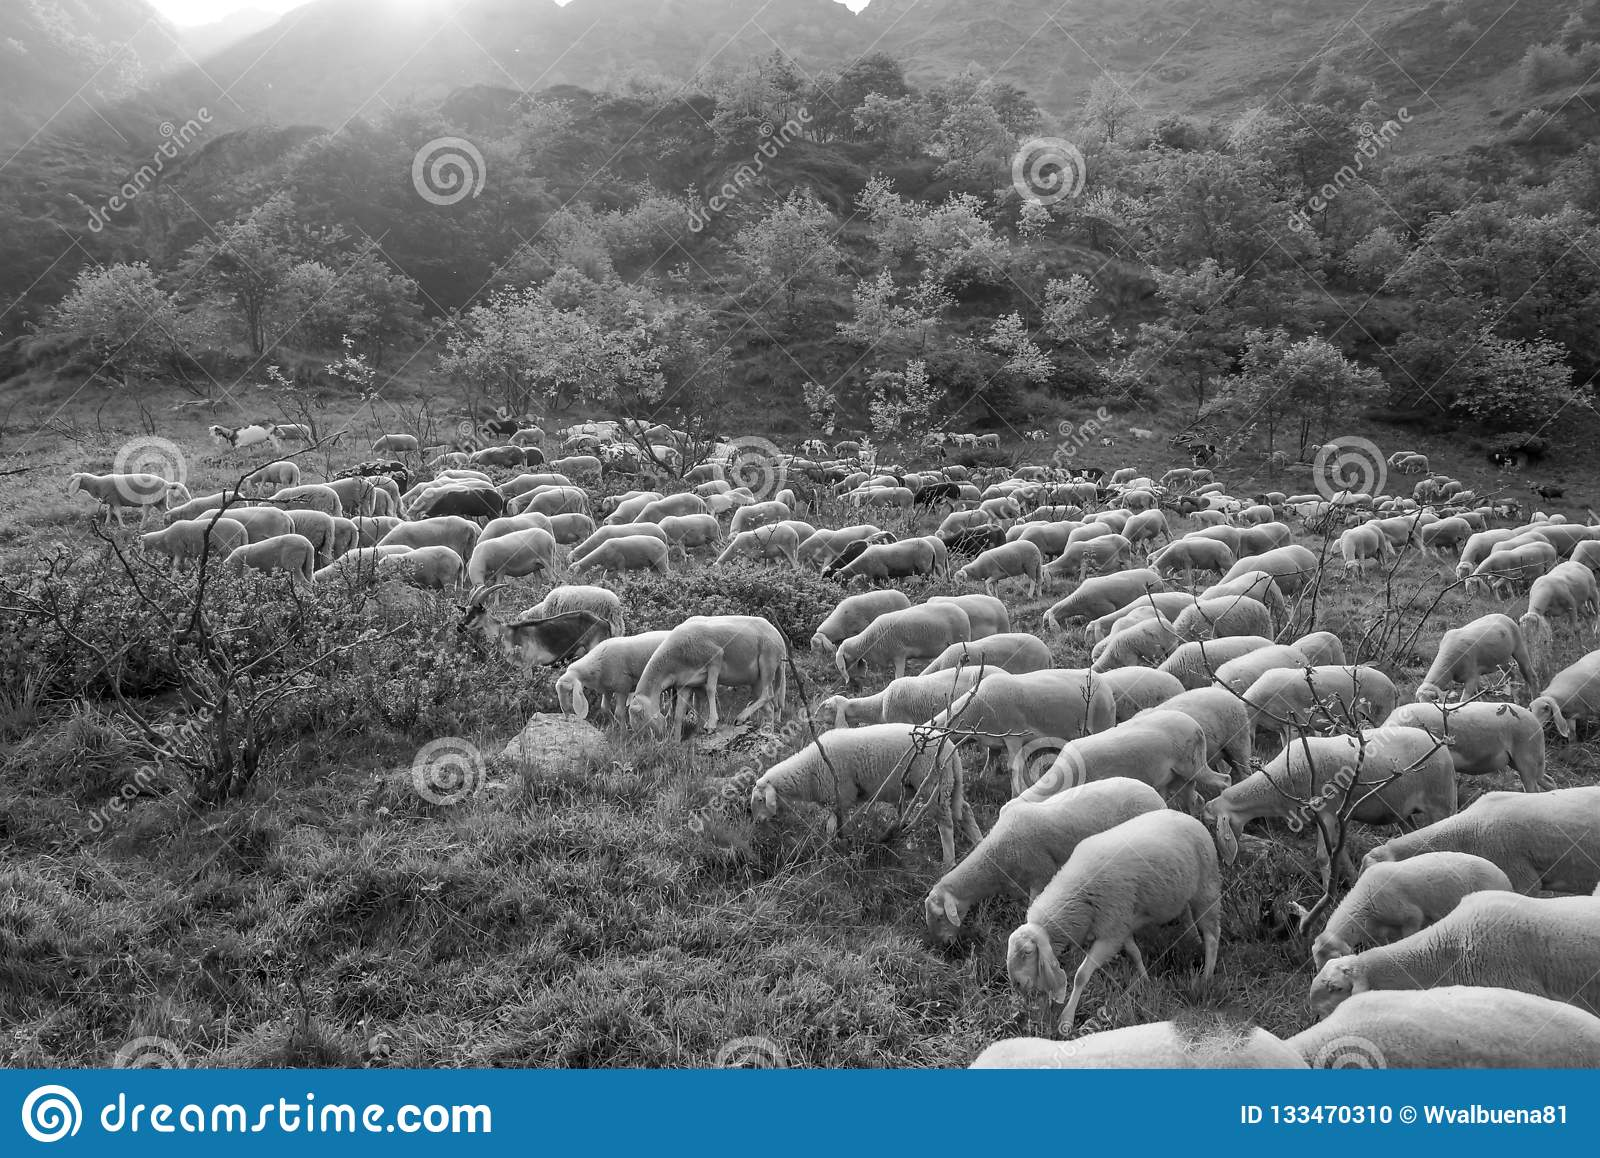 Compact flock of sheep walking and eating in the pasture